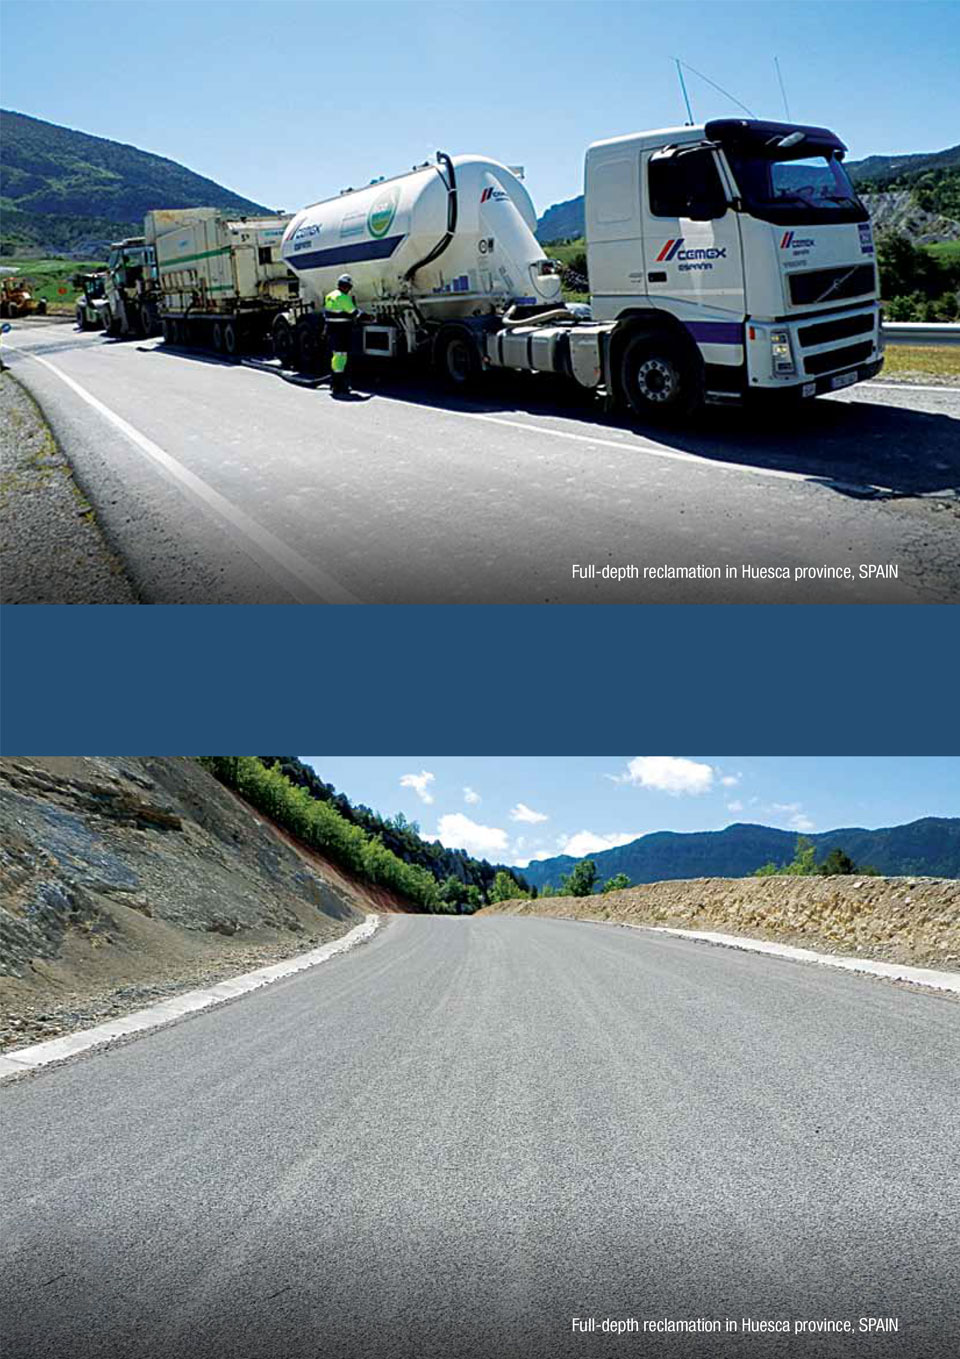 the image shows a road being treated by CEMEX